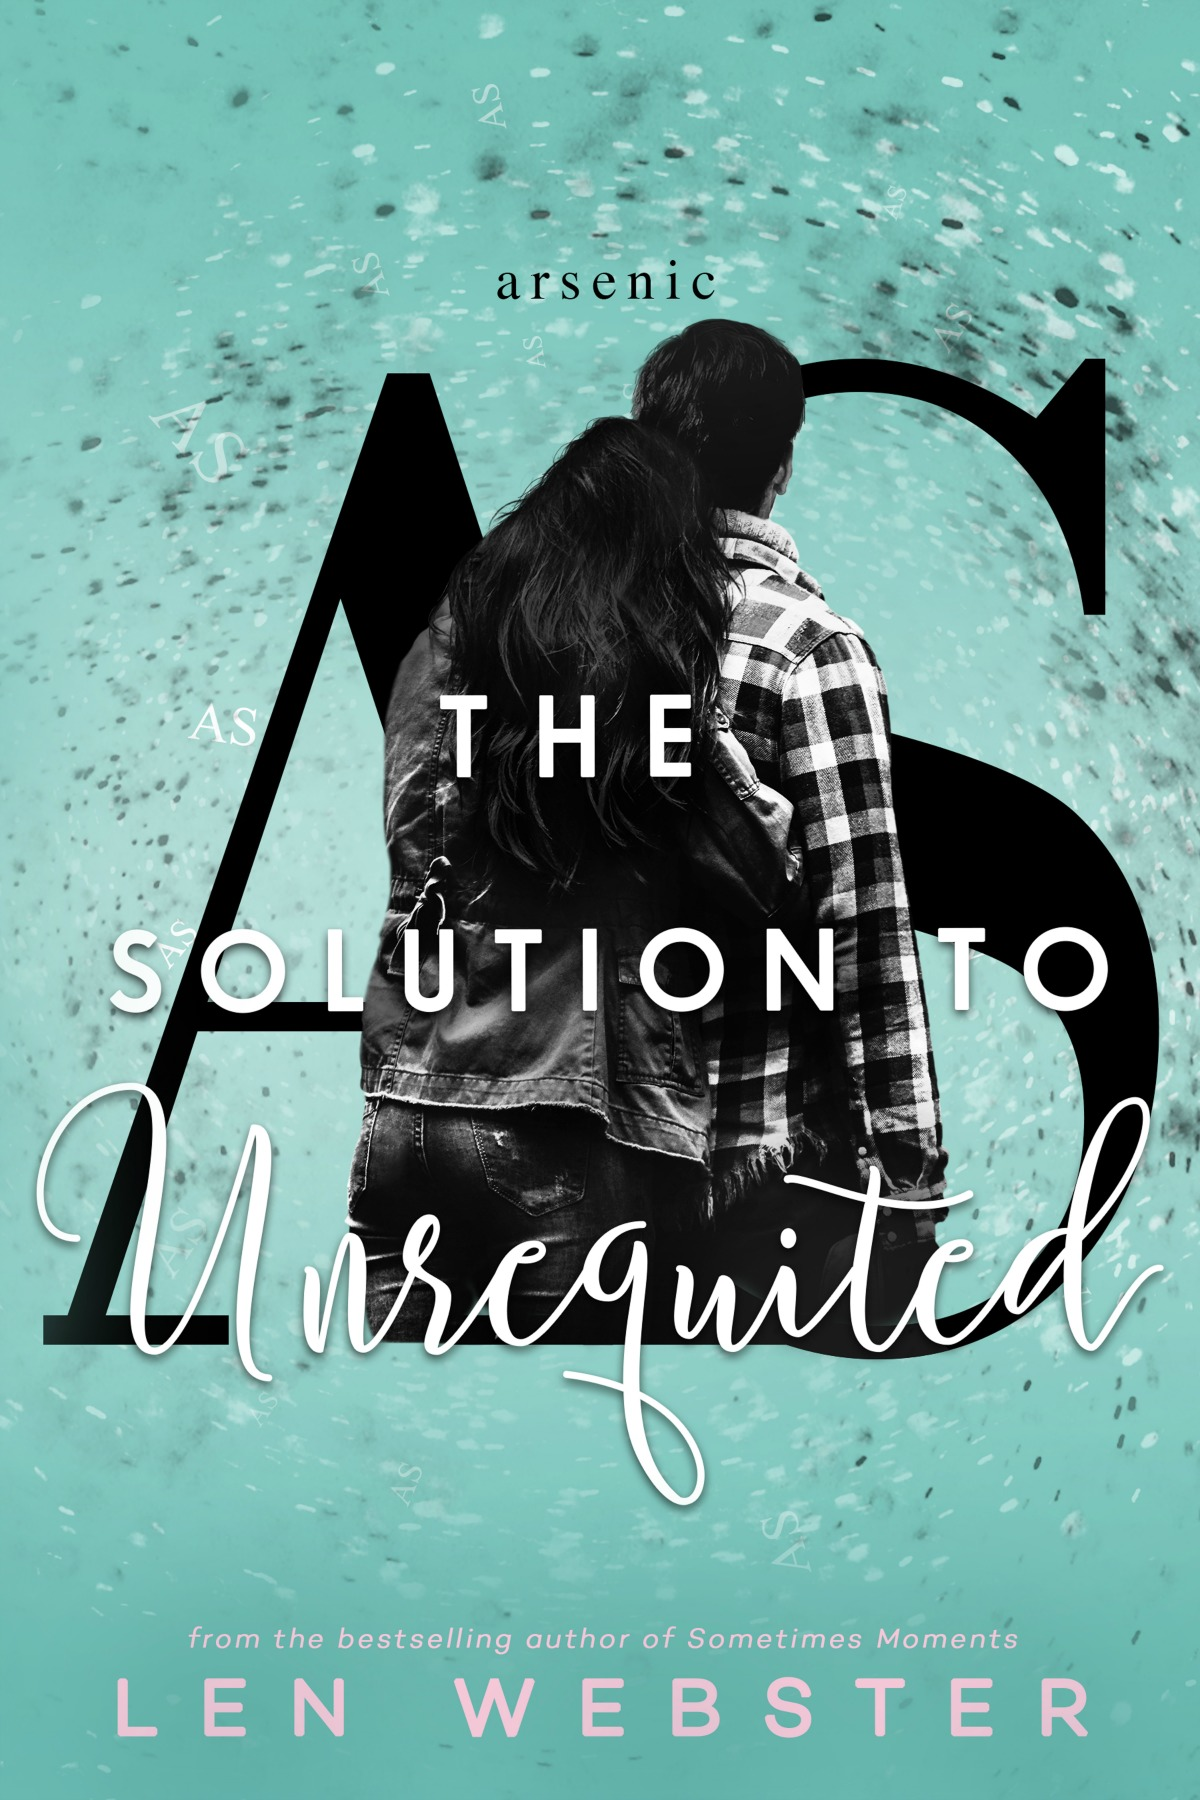 The Solution to Unrequited by Len Webster [Teaser]